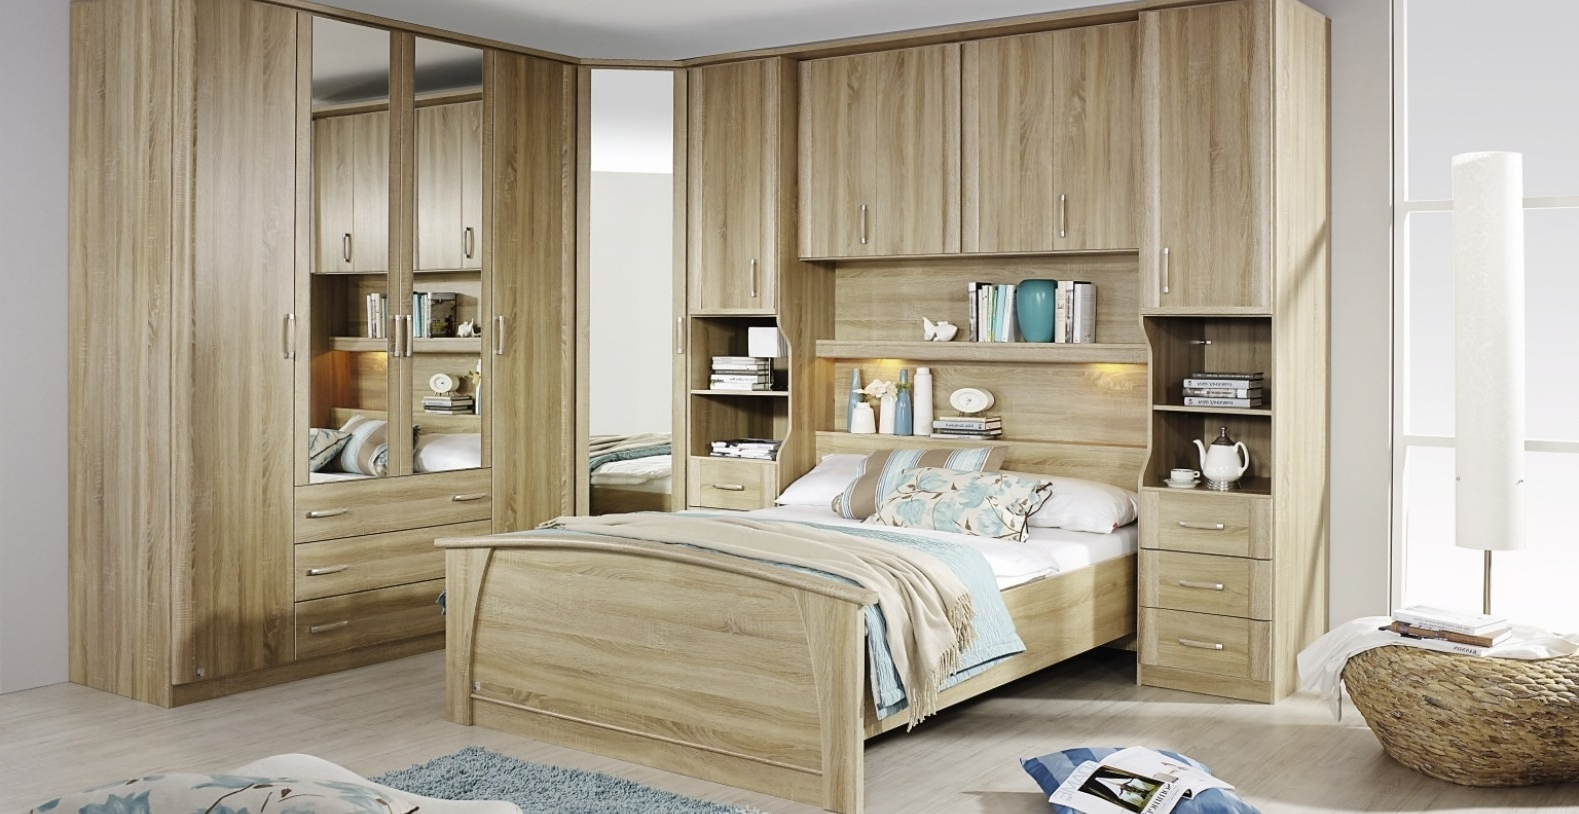 Most Current Over Bed Wardrobes Sets In Unique Over Bed Wardrobe Set – Badotcom (View 13 of 15)